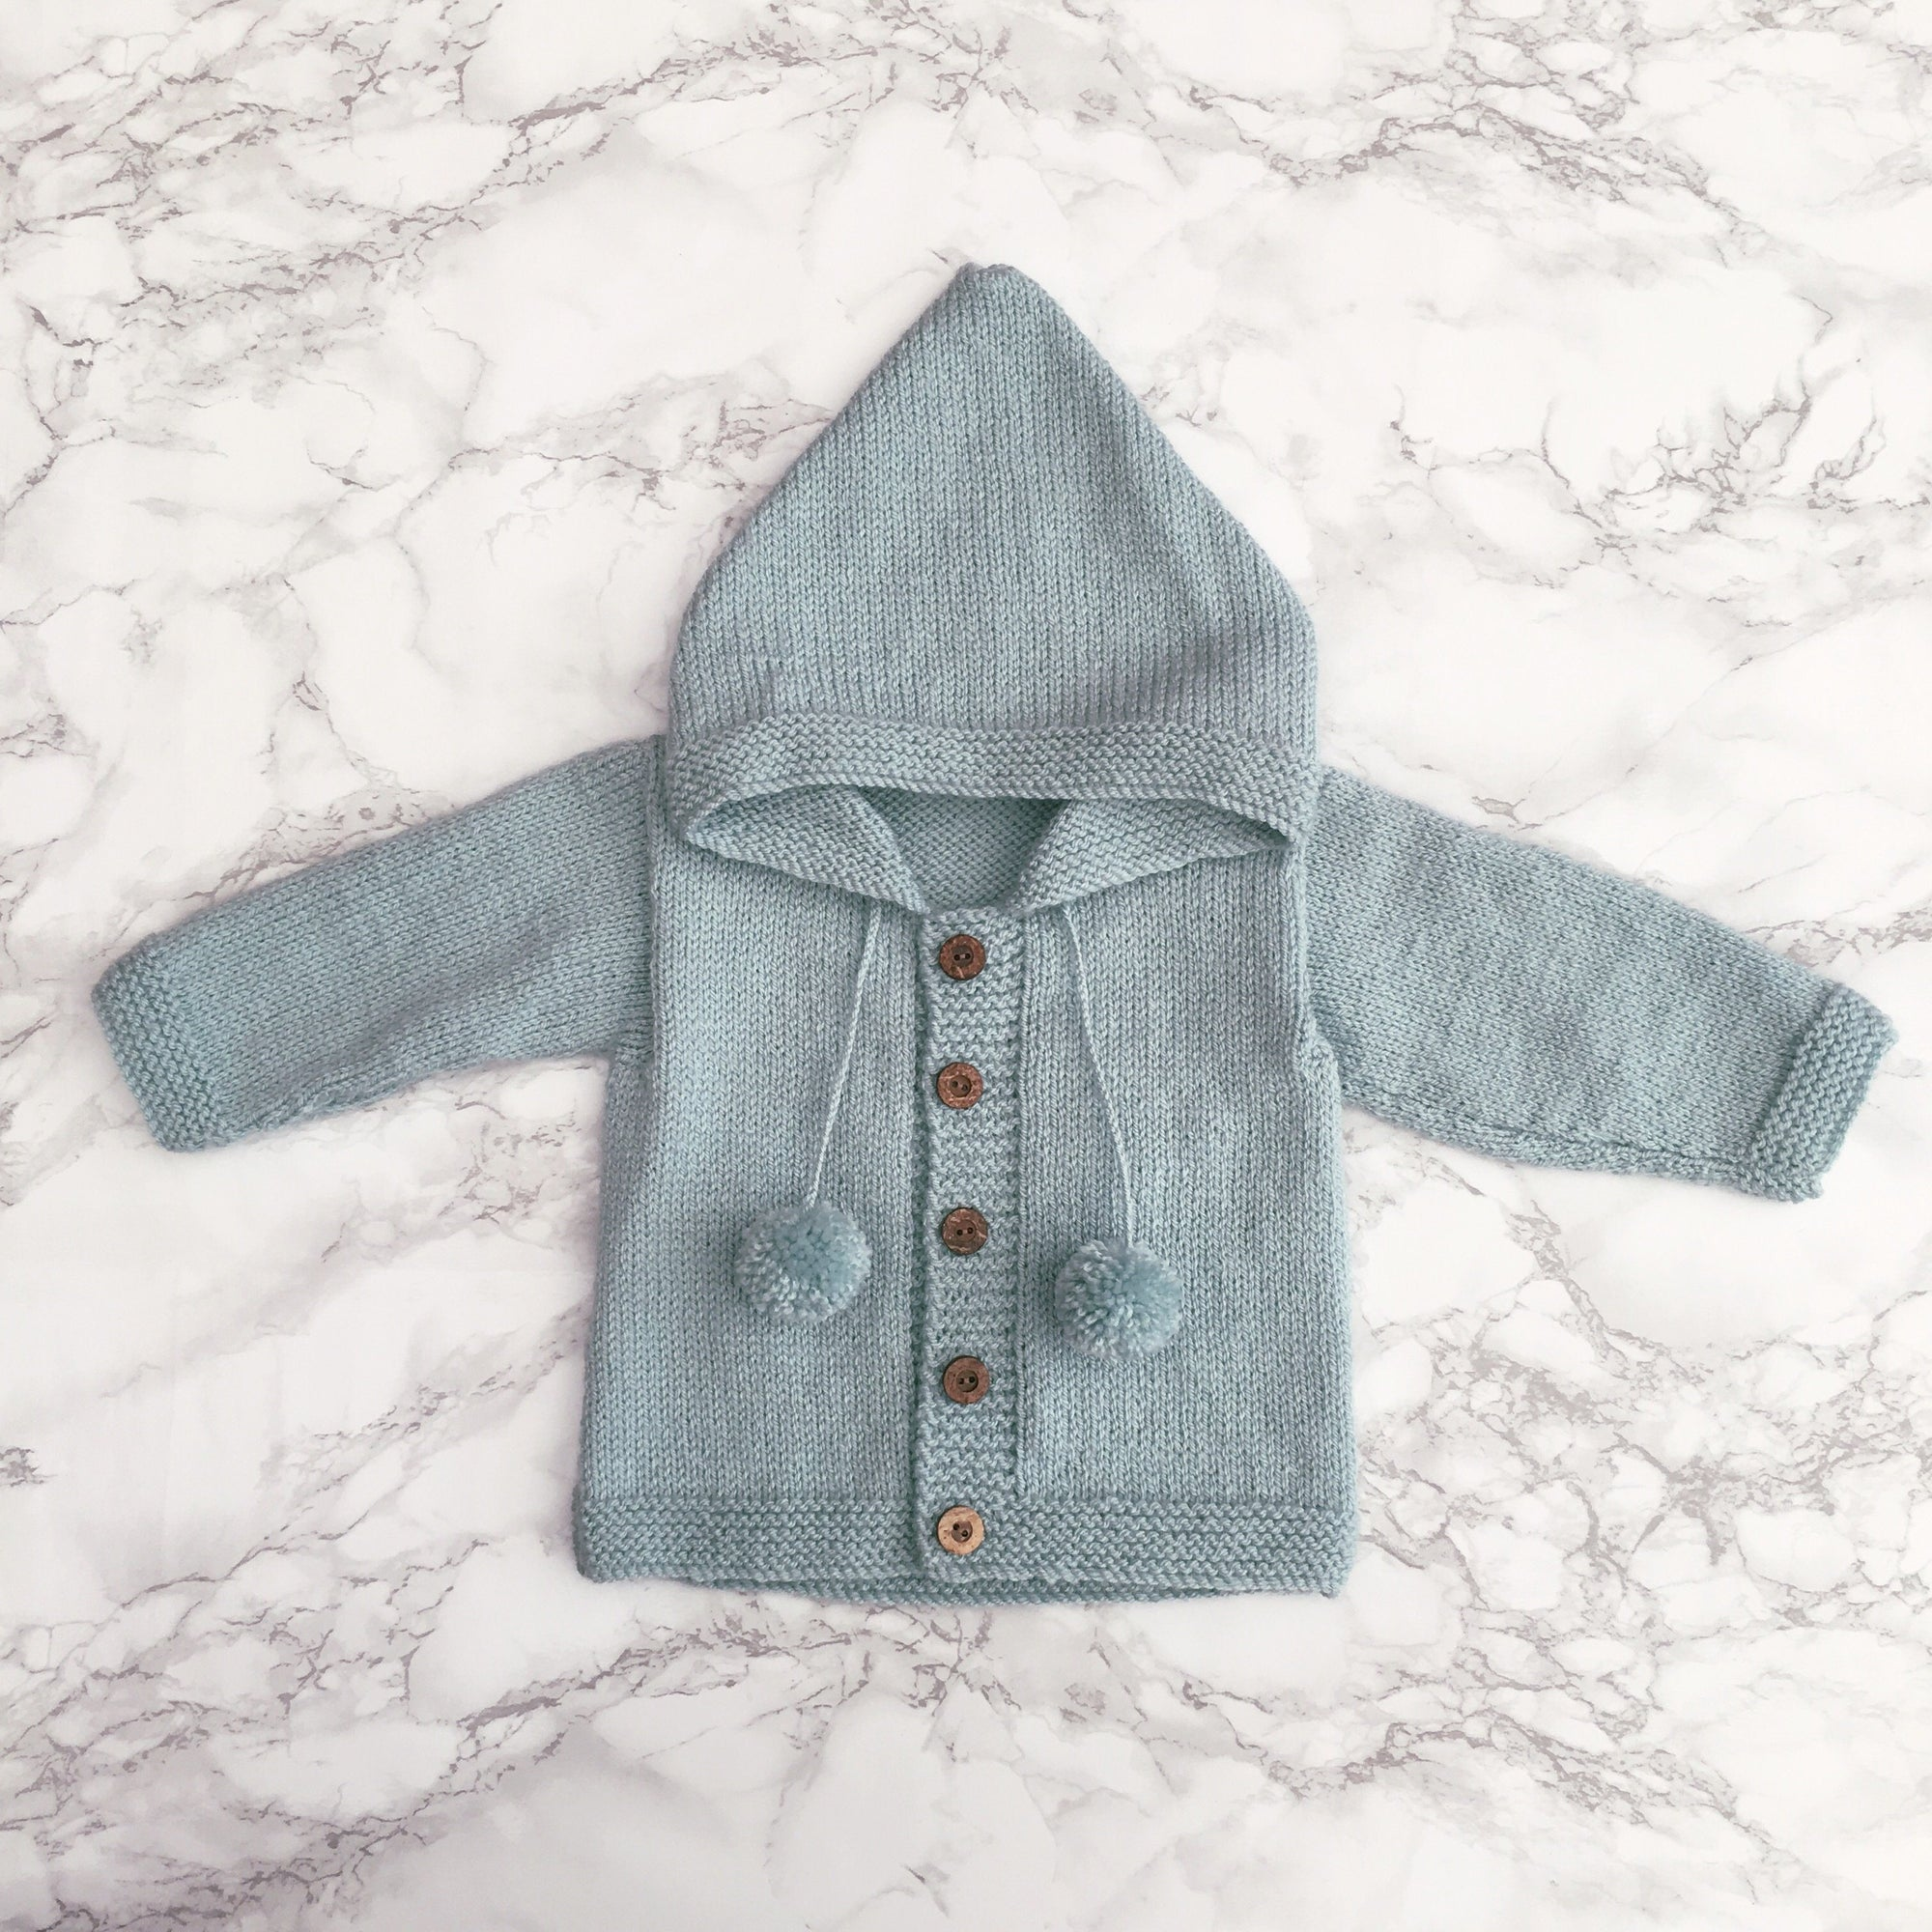 Millie and John Bespoke Bespoke Duck Egg Hoodie | Millie and John